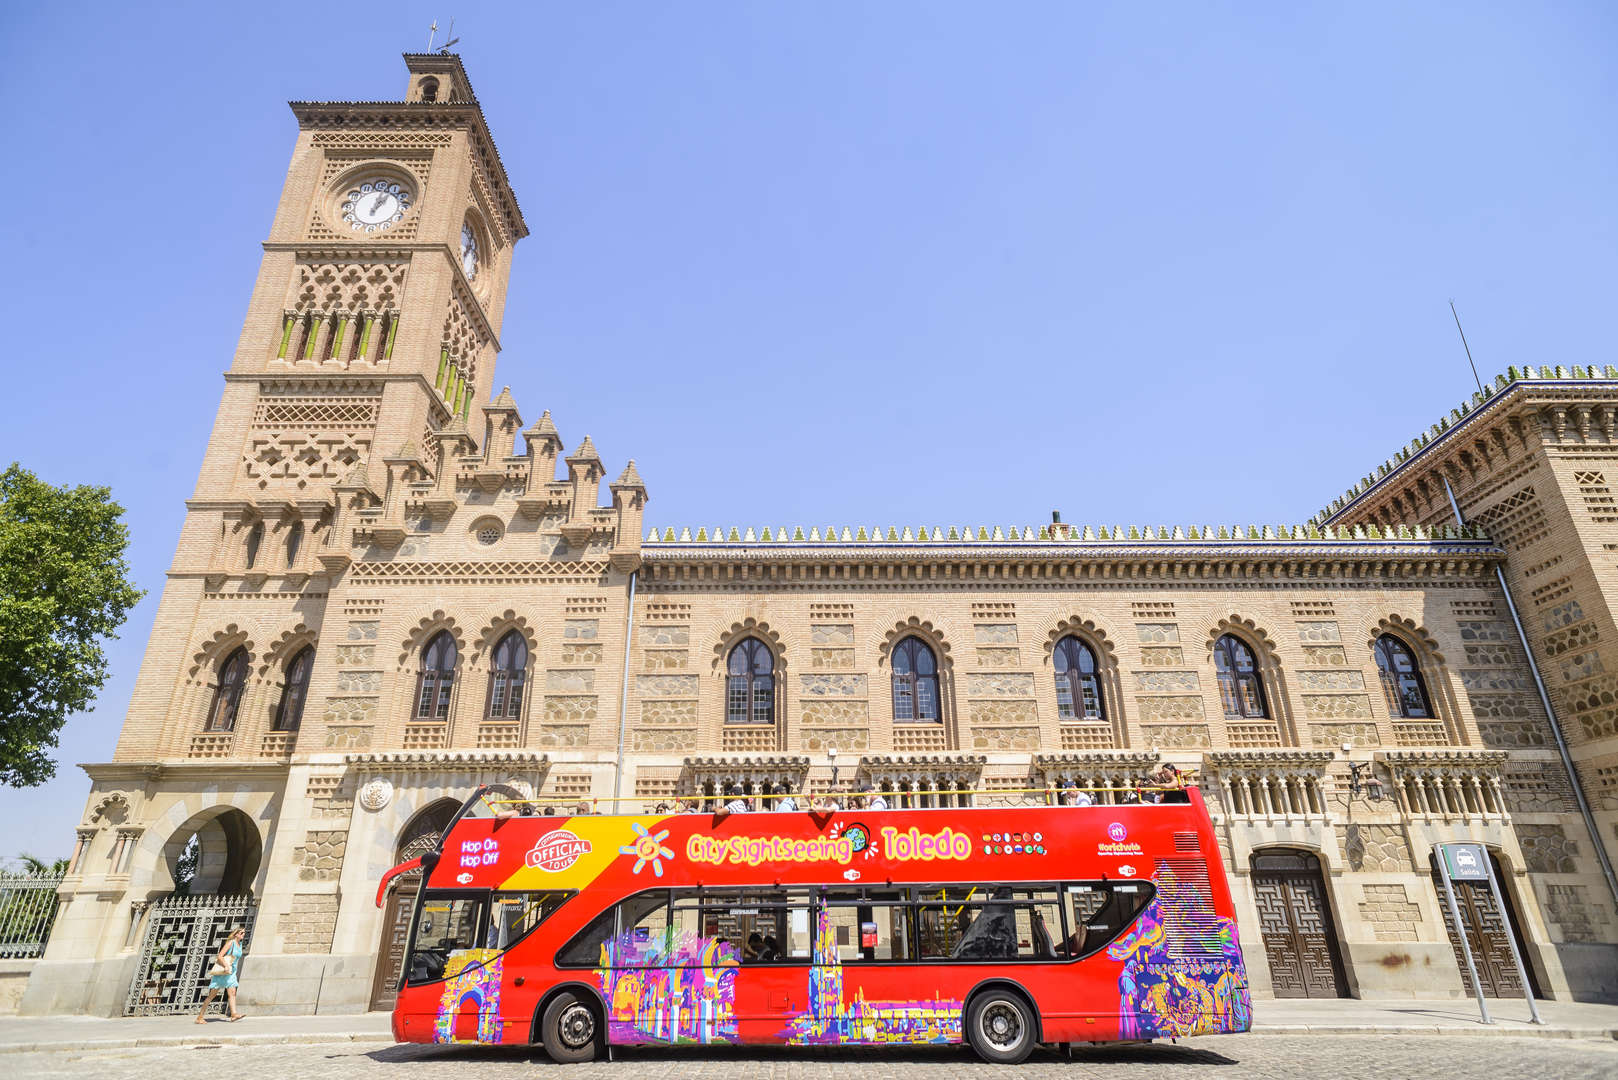 CITY SIGHTSEEING CATEDRAL SKIP-THE-LINE (24H BUS TURÍSTICO + ENTRADA AL ALCÁZAR + ENTRADA CATEDRAL SIN COLAS)<br /><strong>Tickets <strong class='extra_info_articulo'>- desde 33.90 €  </strong></strong>